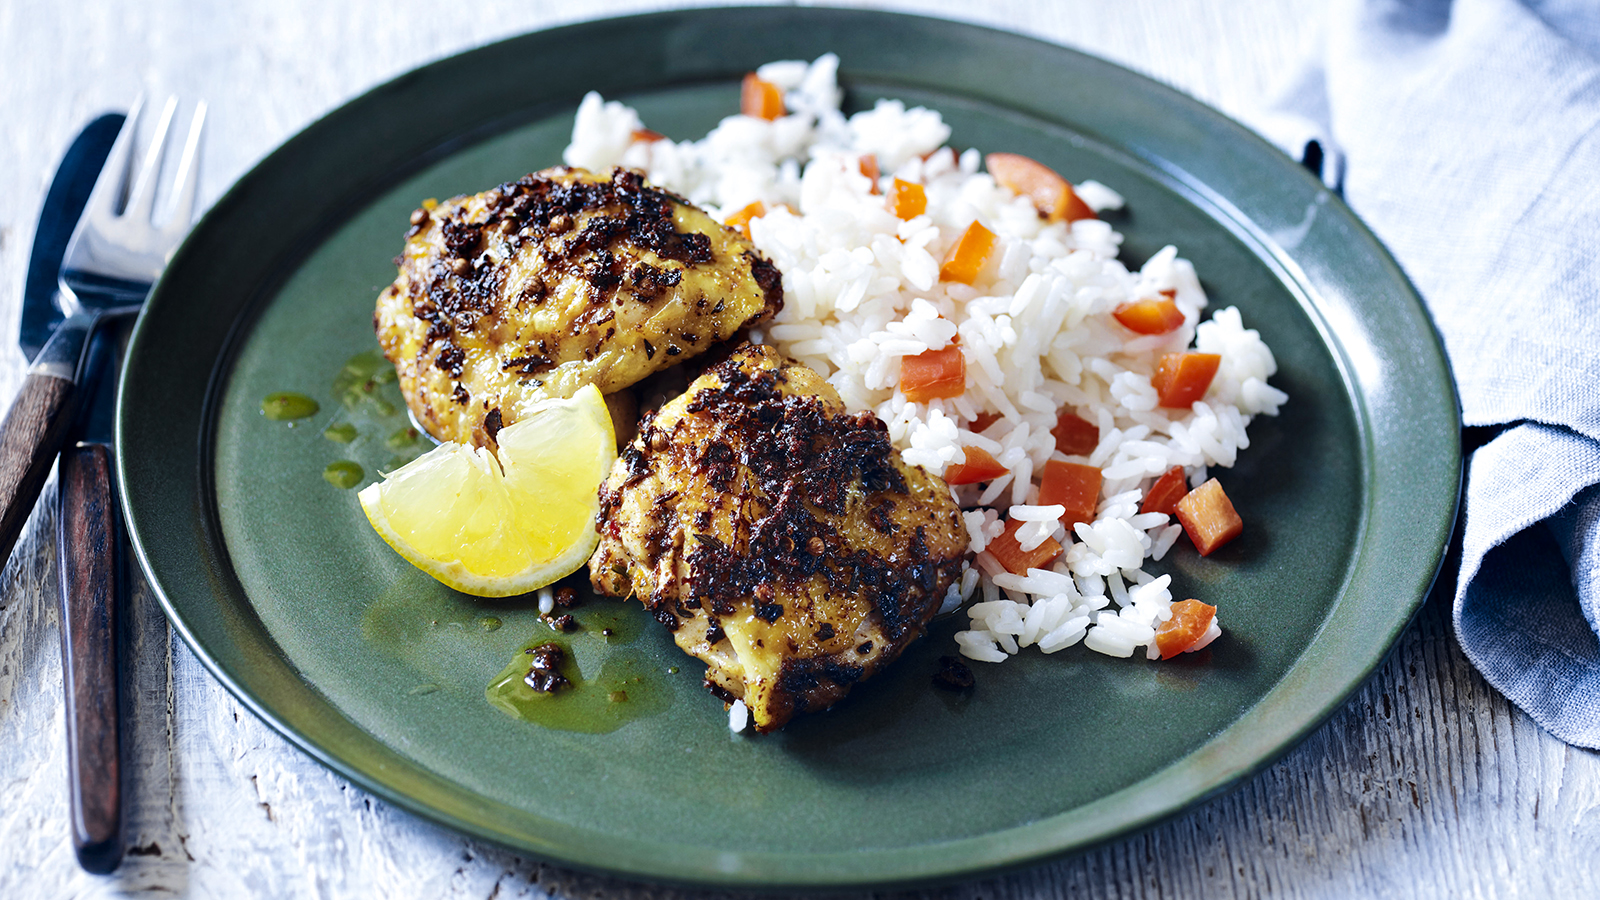 Spicy jerk chicken thighs with peppers and rice recipe bbc food forumfinder Gallery